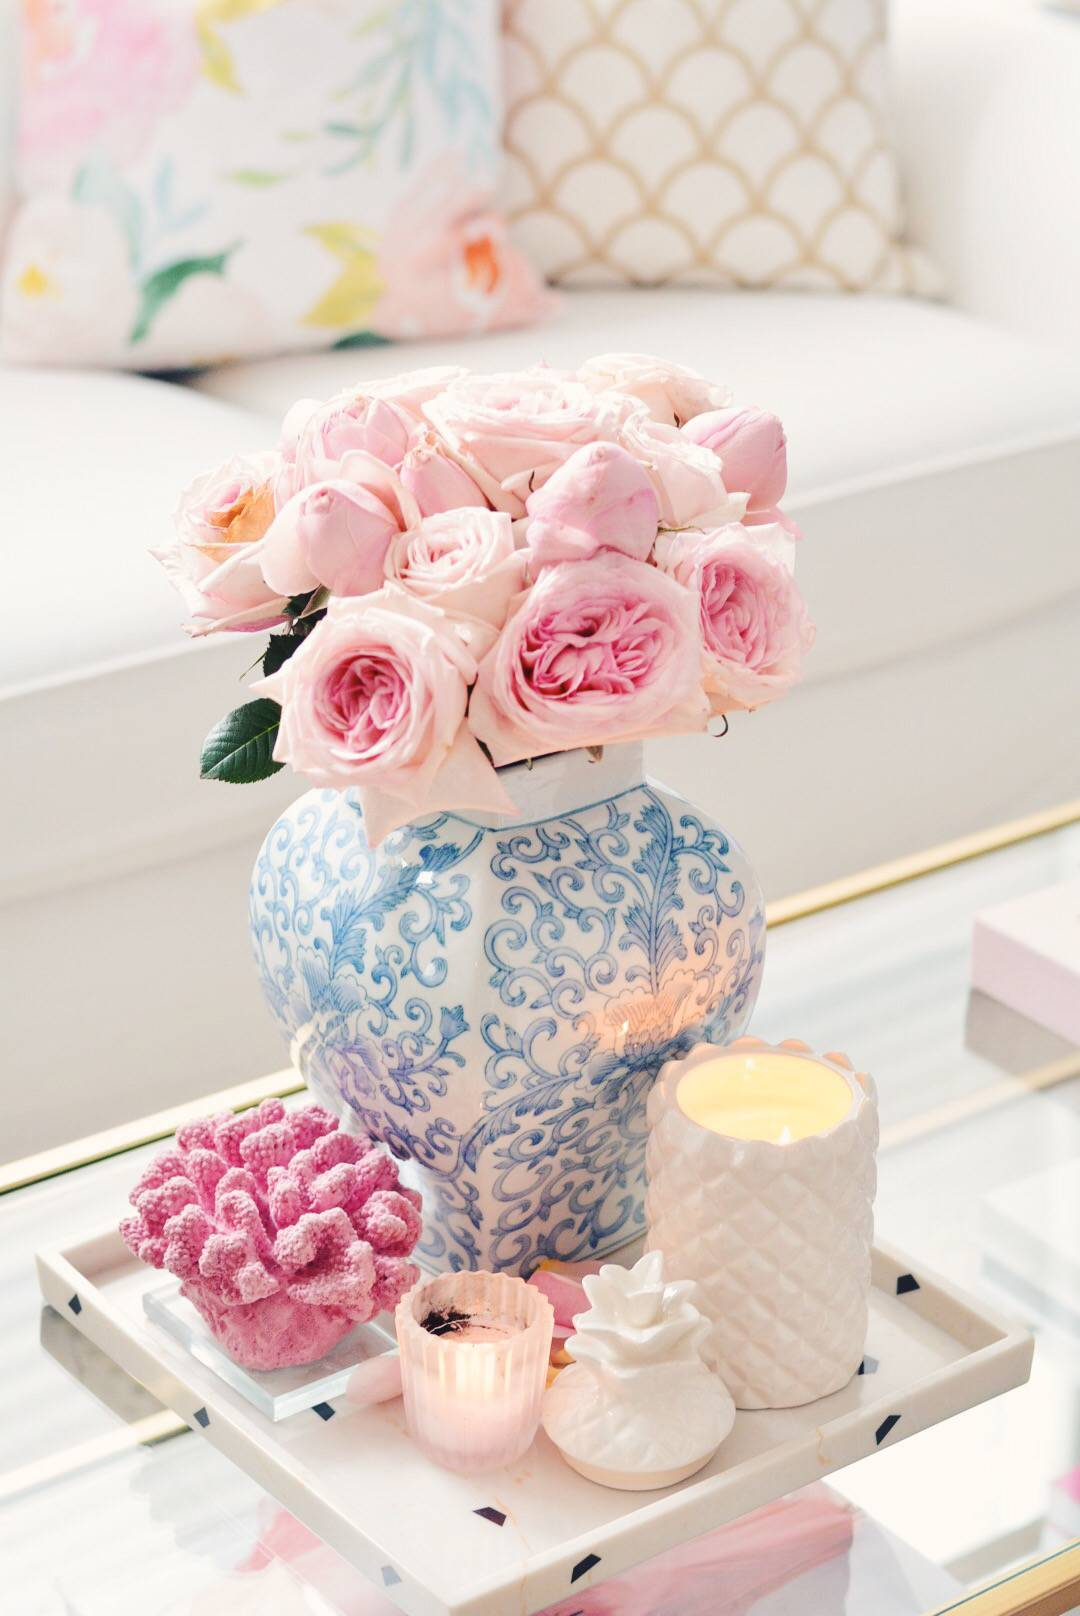 Brighten up the room with some pink flowers. For this arrangement, the roses Pink O'Hara and Peony Pink are a perfect choice.